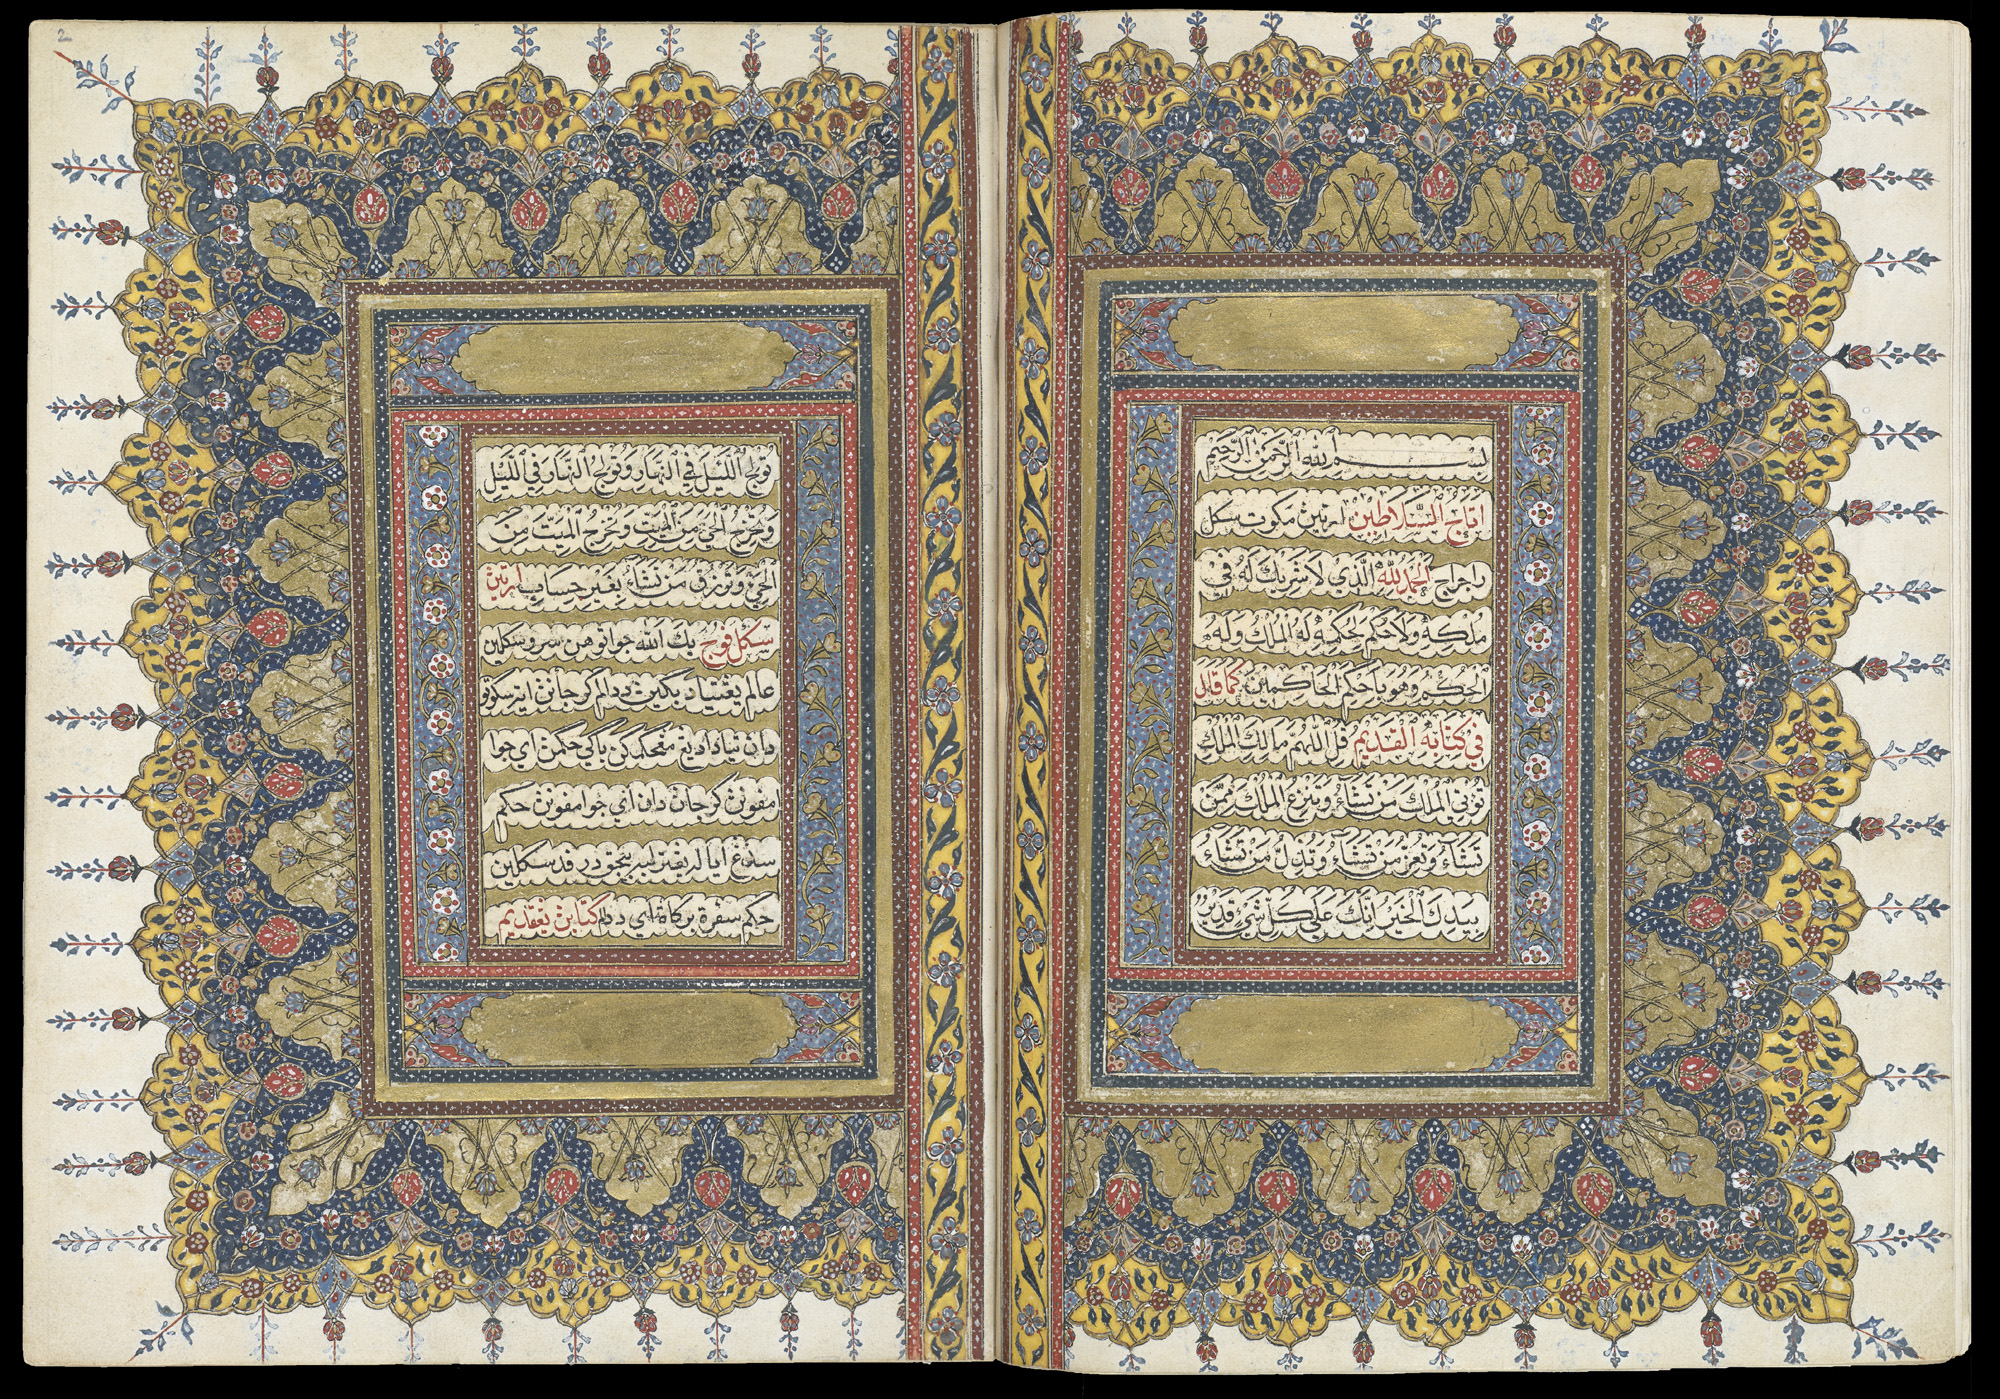 Illuminated manuscript of an ethical guide for rulers The Crown of Kings Taj al-Salatin copied in Penang in 1824. Malay Manuscripts British Library